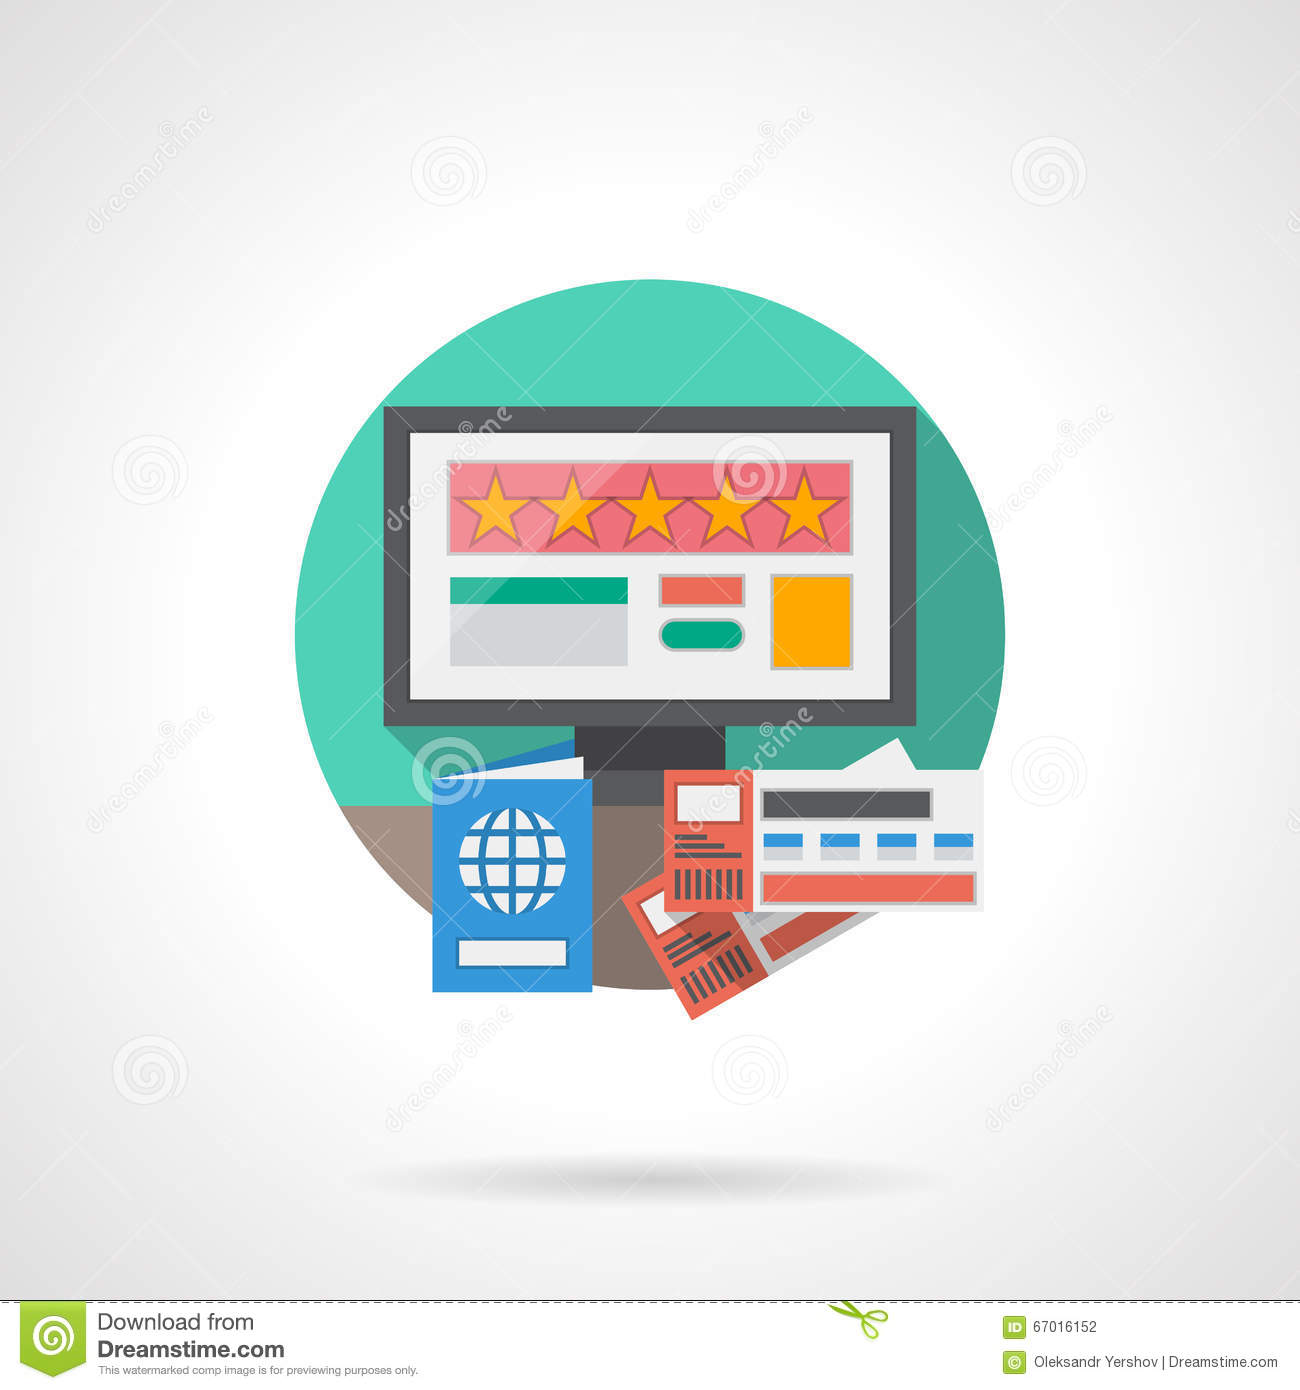 Online hotel detailed flat color icon stock illustration for Booking design hotel